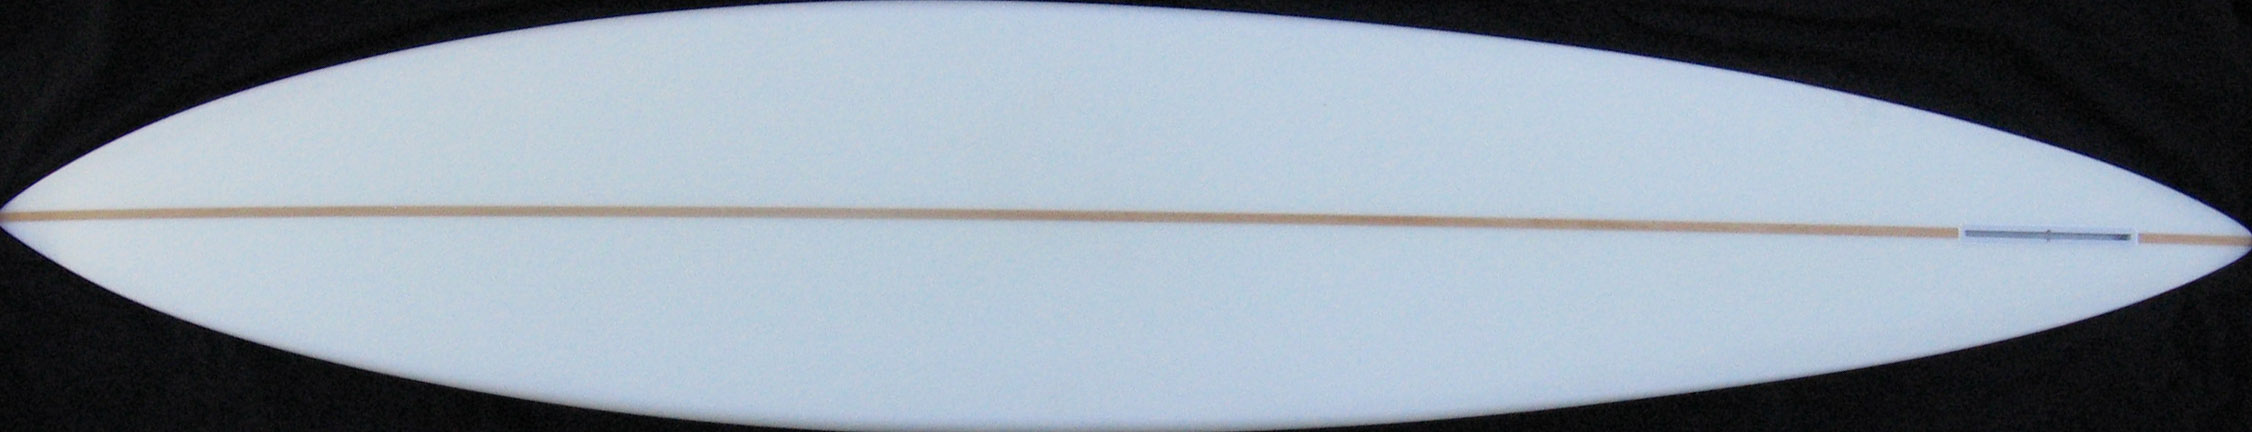 Gun surfboards are narrow both at the nose and at the tail